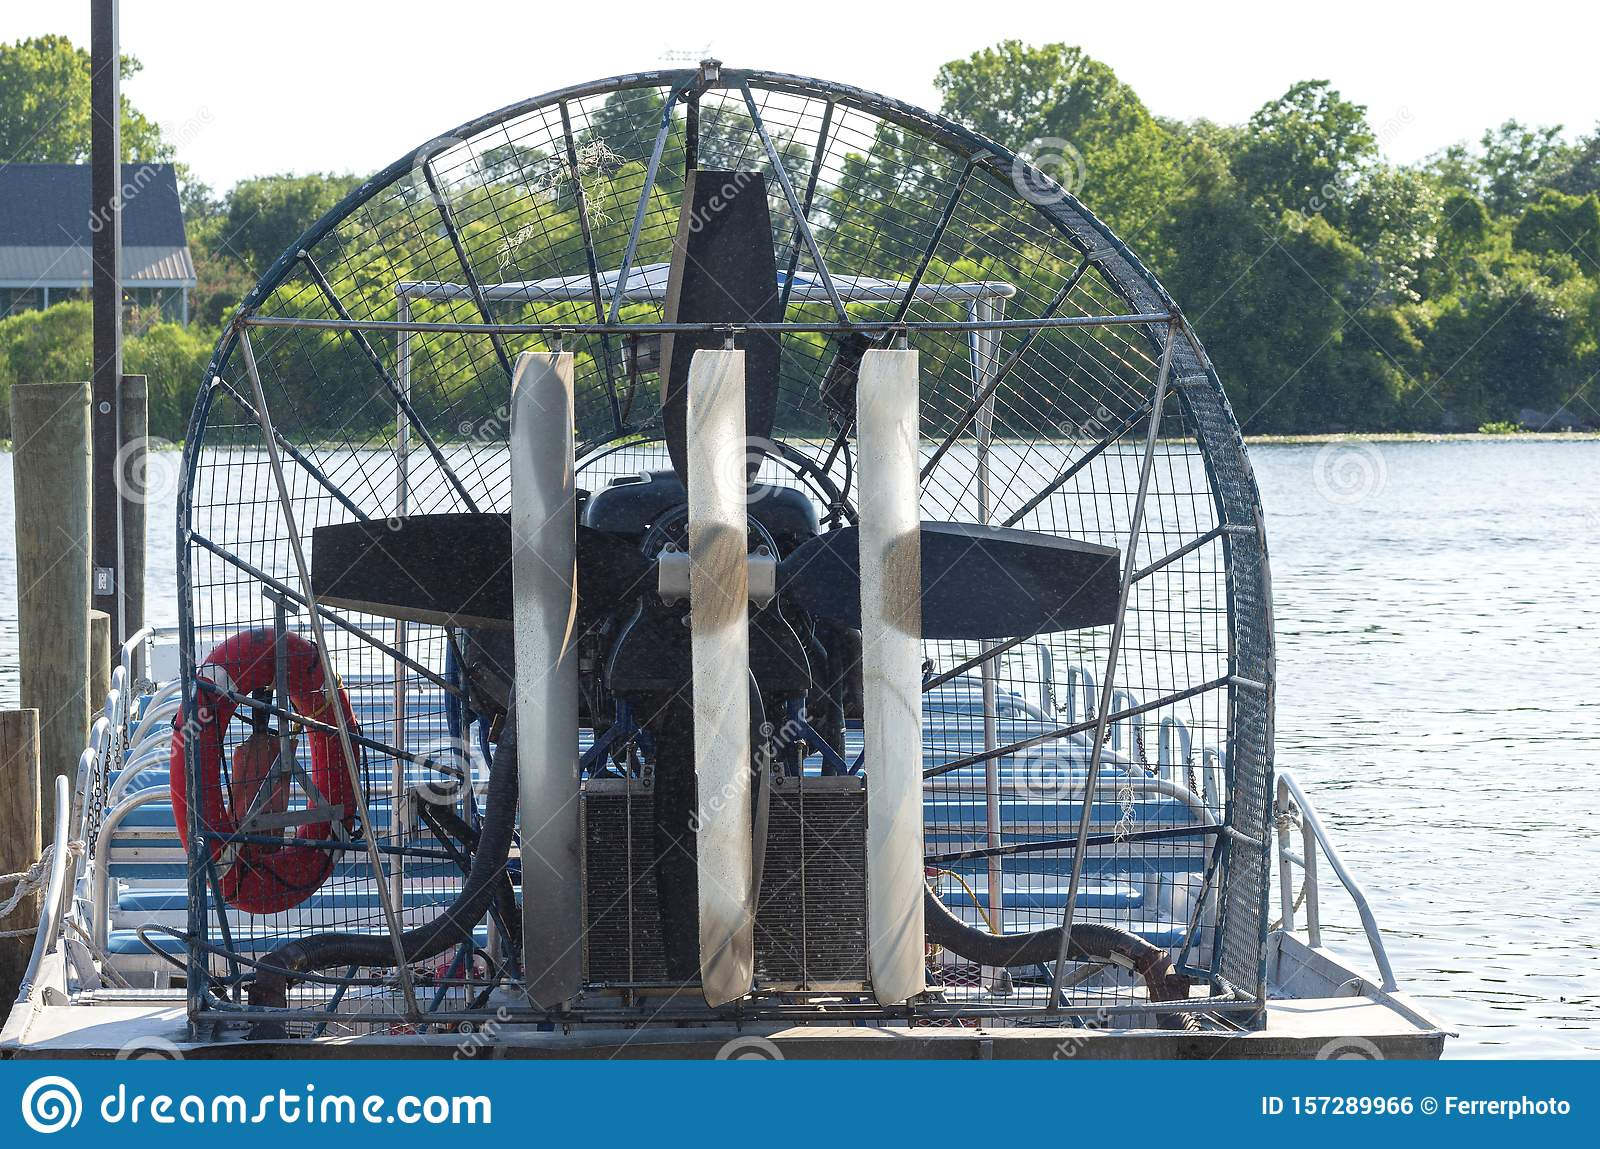 Closeup of Airboat at Pier